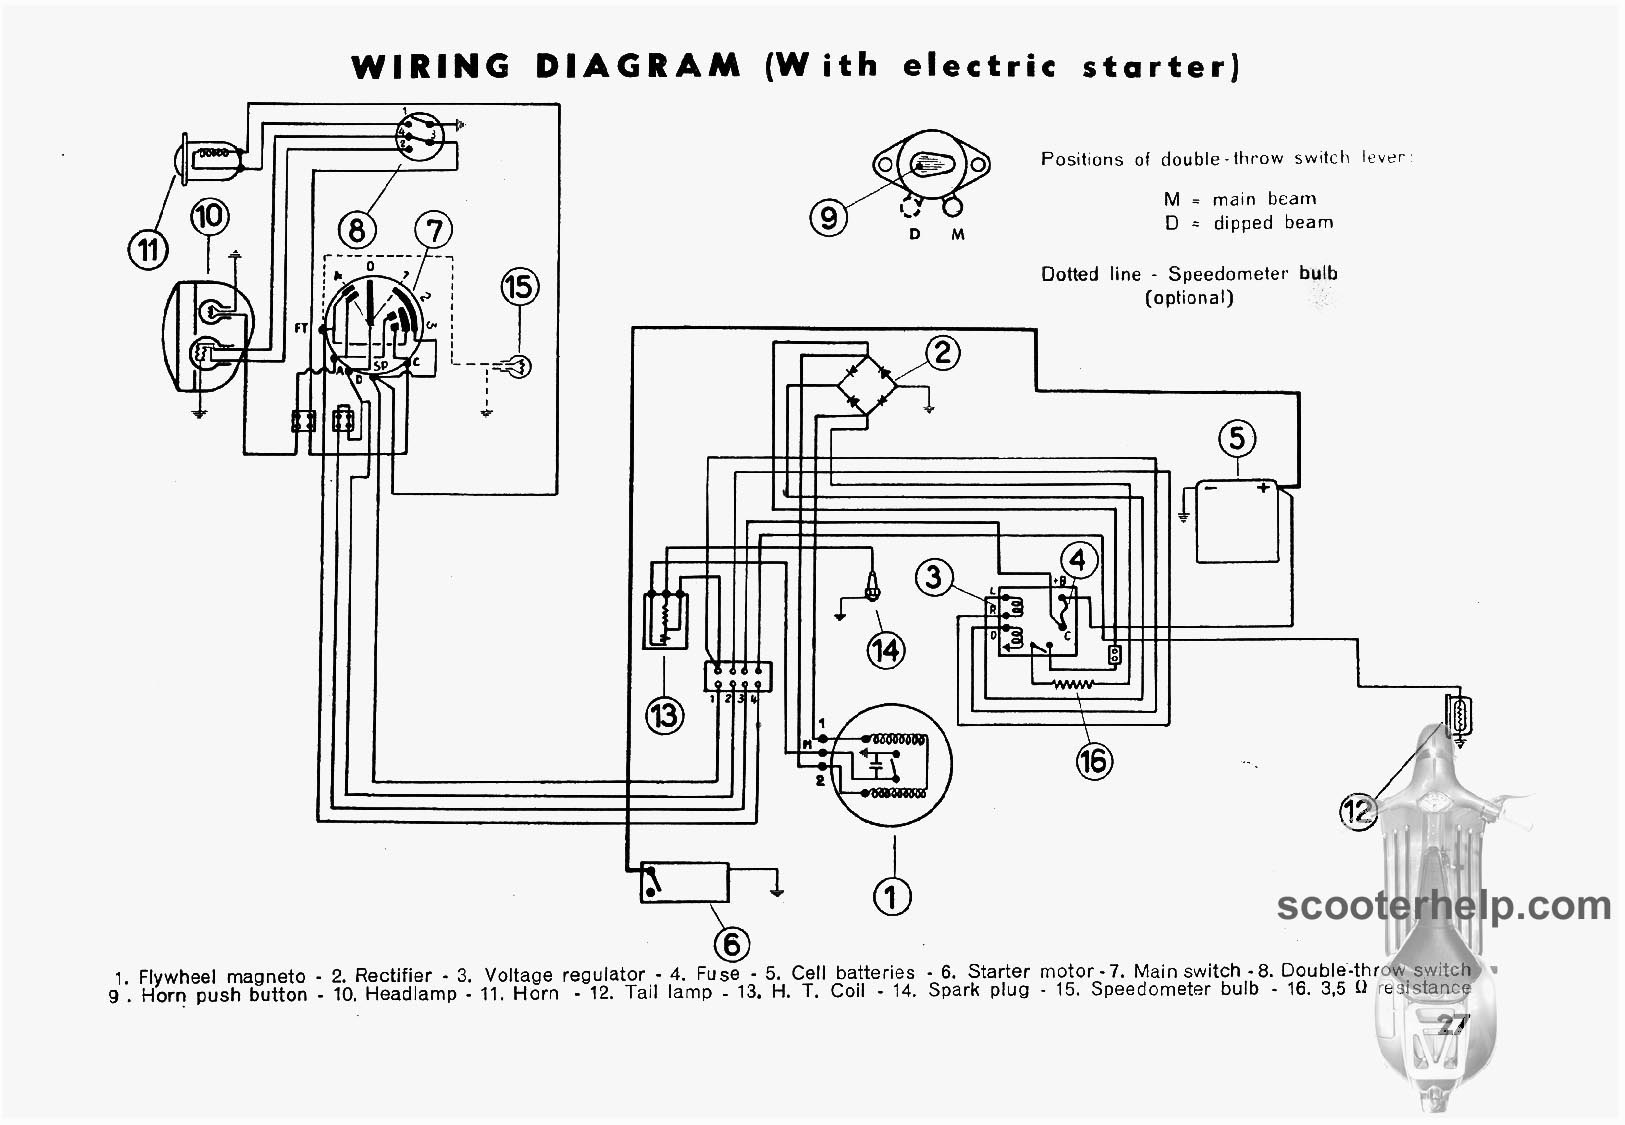 page27 lambretta 150 ld owner's manual lambretta series 2 wiring diagram at crackthecode.co